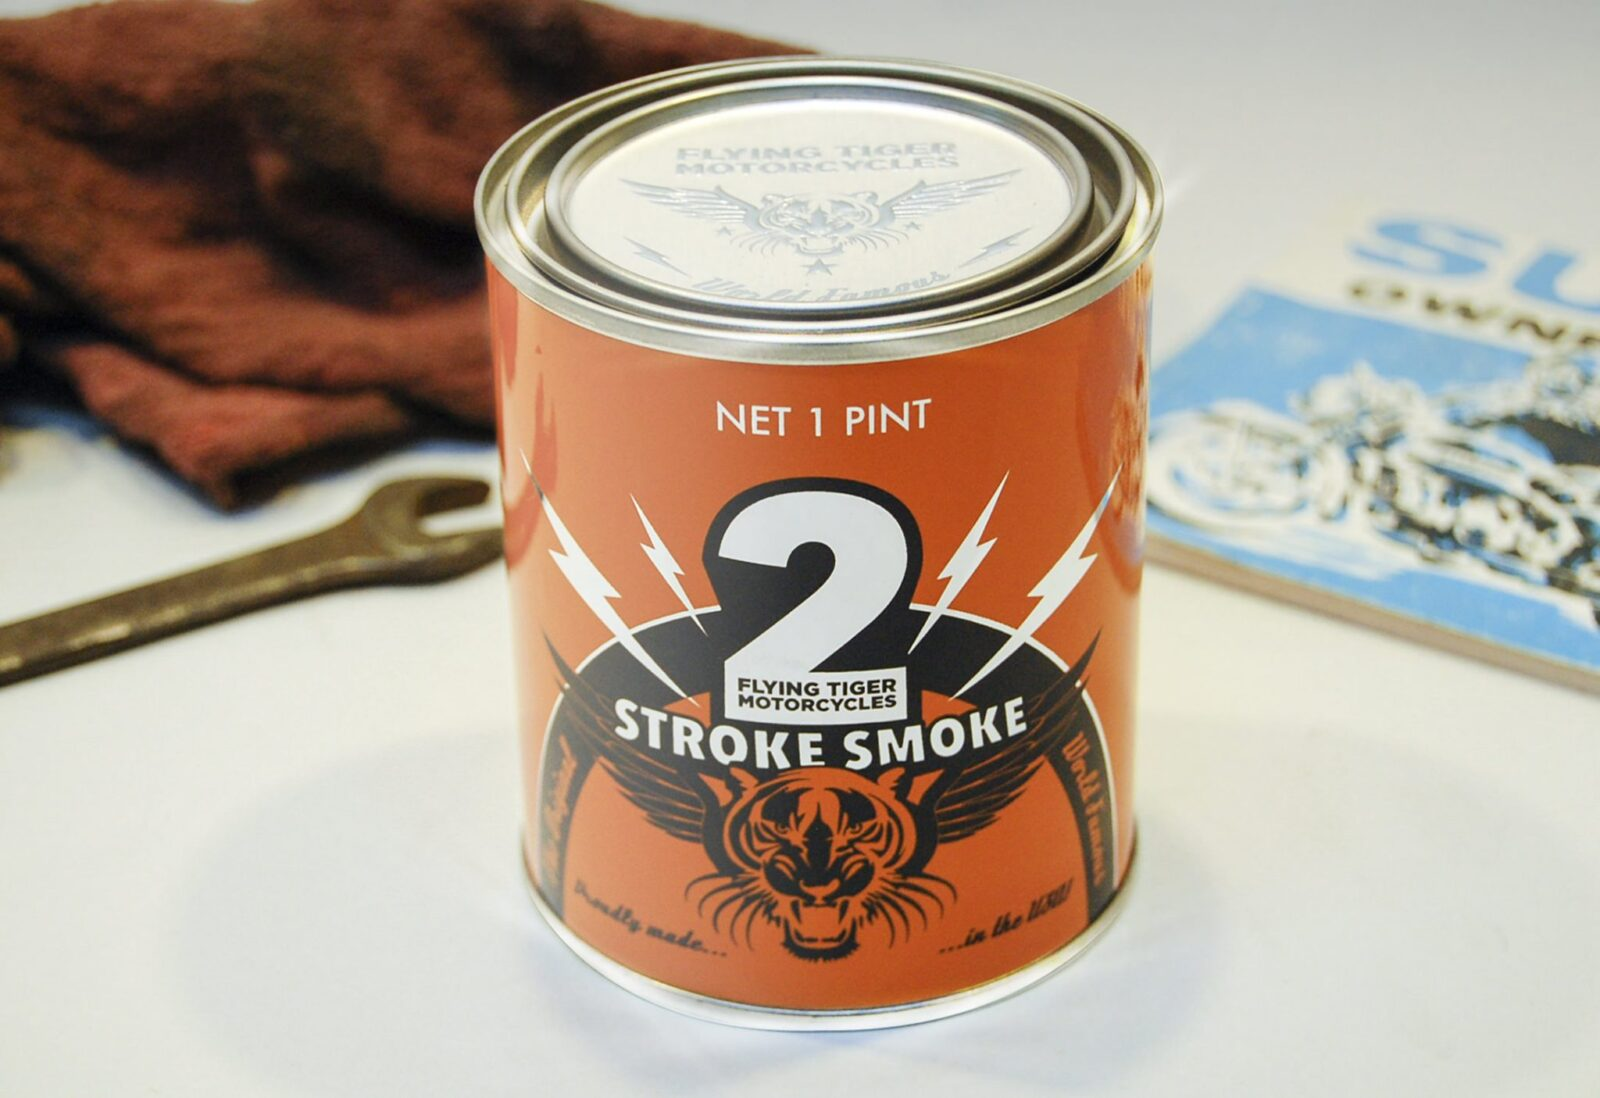 Two Stroke Candle 1600x1098 - Two Stroke Smoke Candle by Flying Tiger Motorcycles